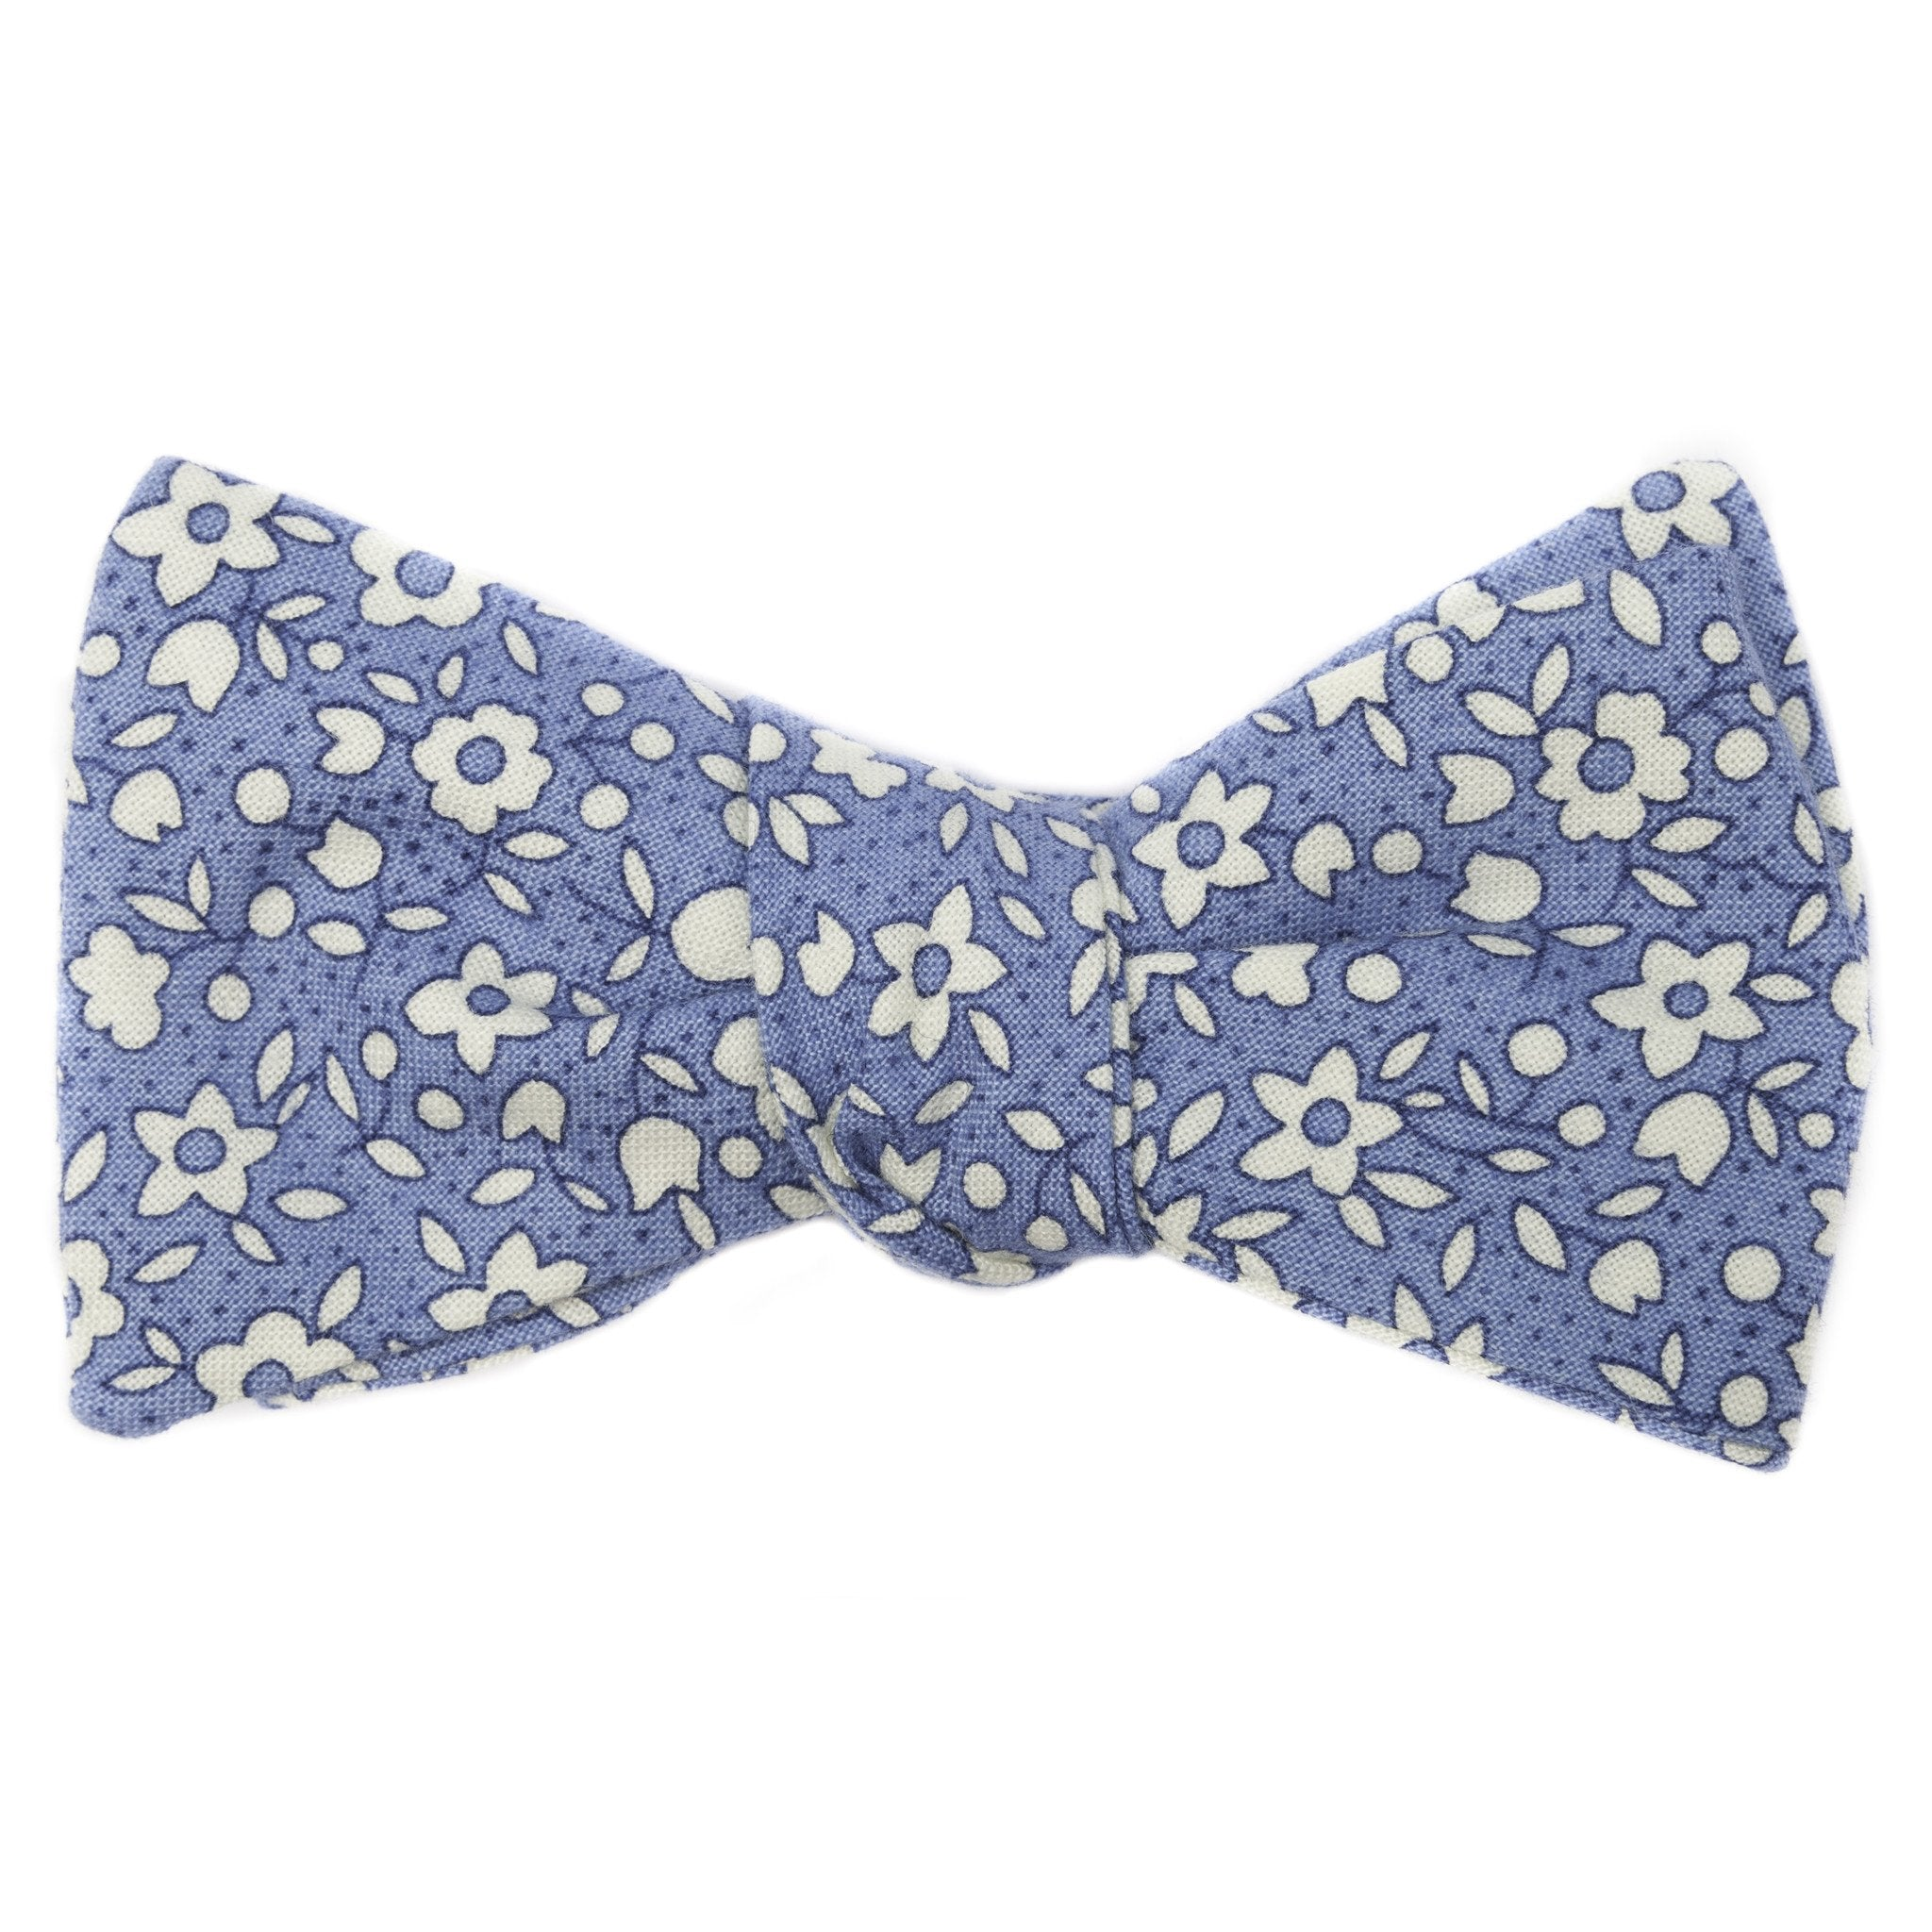 Mill City Fineries Azure Floral Bow Tie